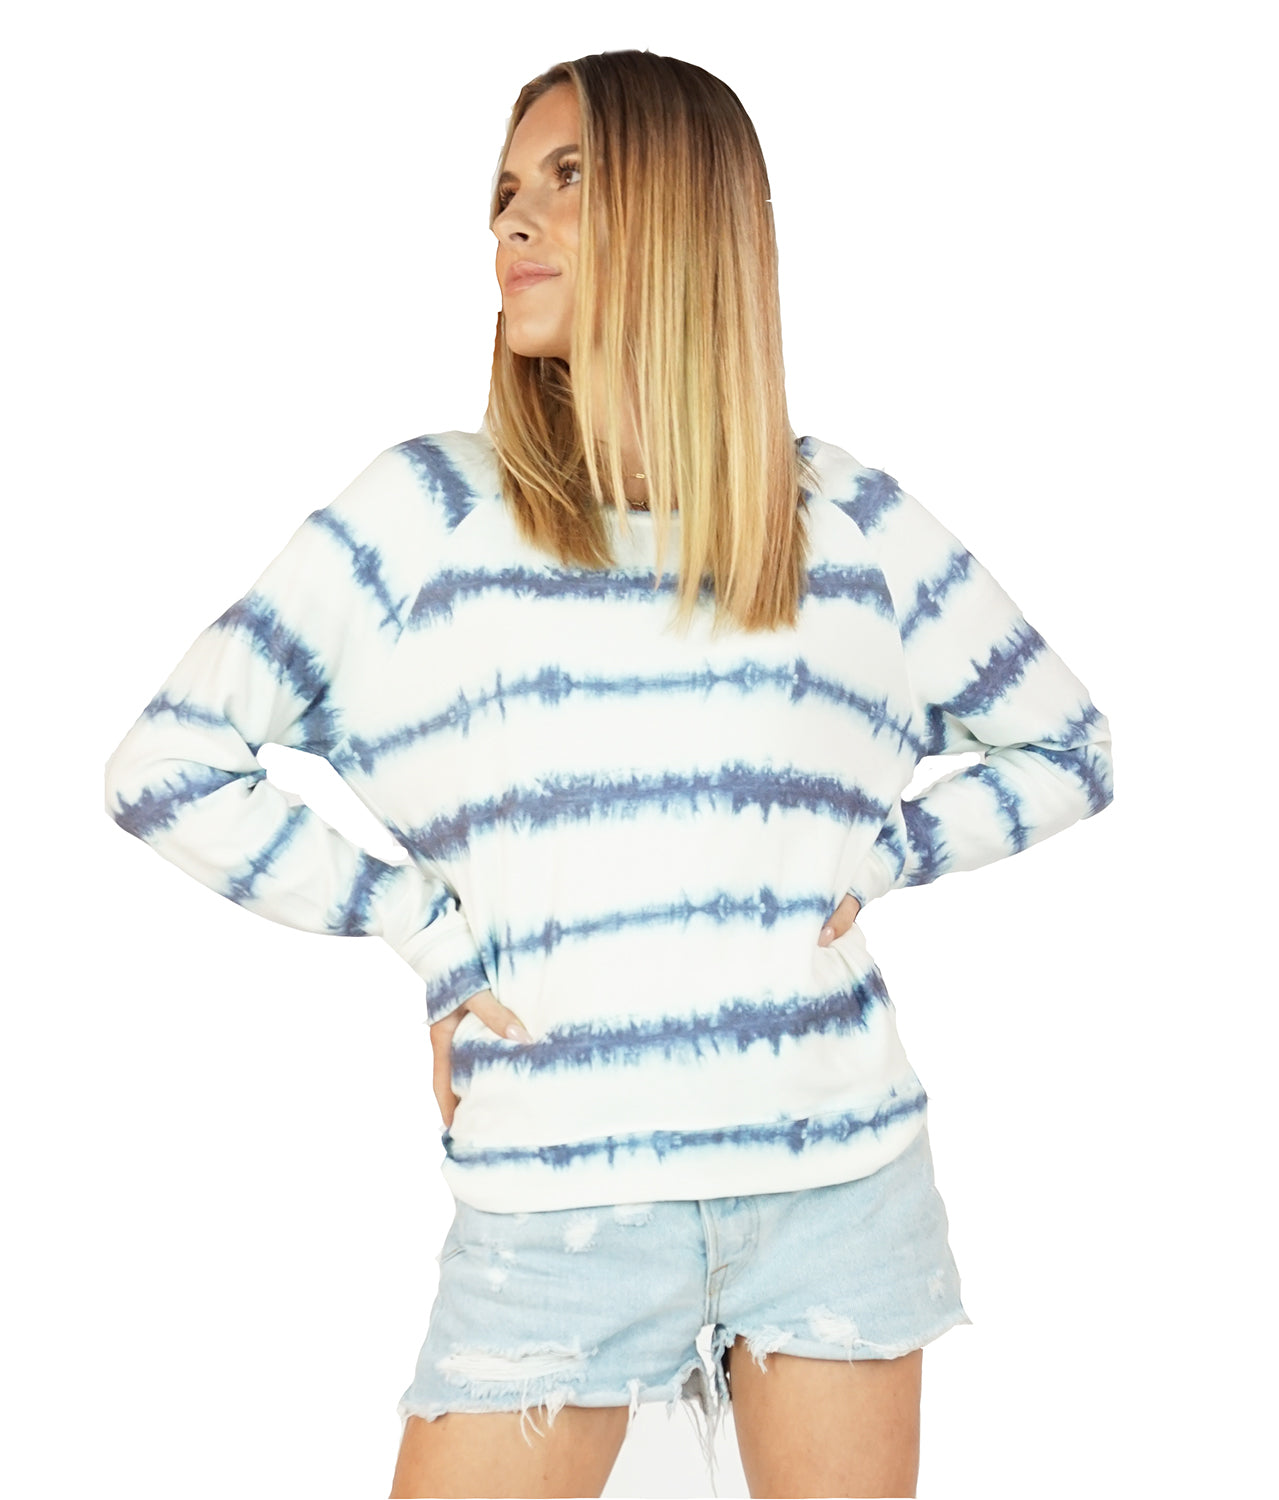 Women's Tie-Dye Stripe Sweatshirt, Super Soft Poly/Rayon/Spandex Blend, Size XS-L | Brokedown Clothing